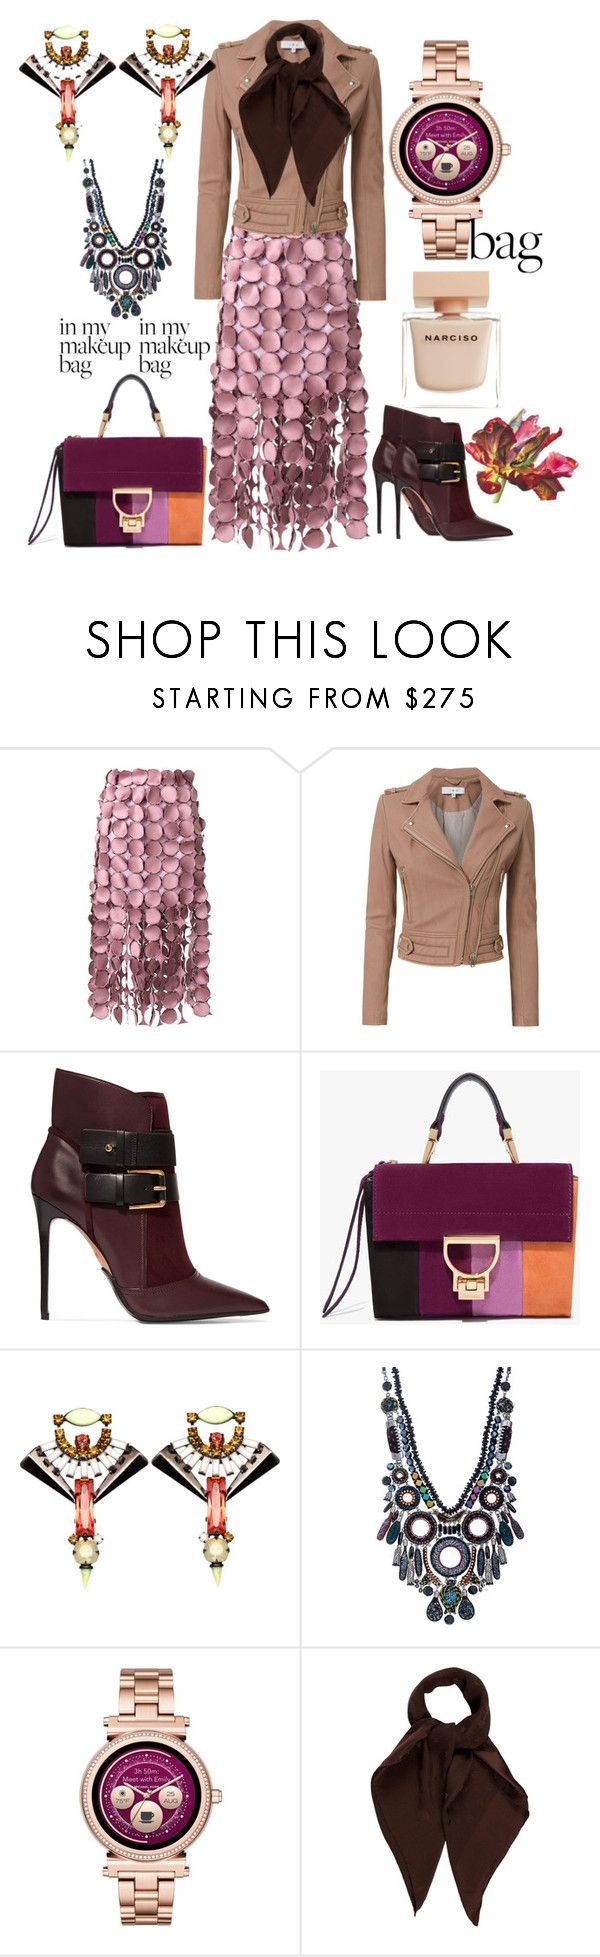 """""""MRS Violet!"""" by svrrvs ❤ liked on Polyvore featuring Loewe, IRO, Balmain, Ayala Bar, Michael Kors, Louis Vuitton and Narciso Rodriguez"""